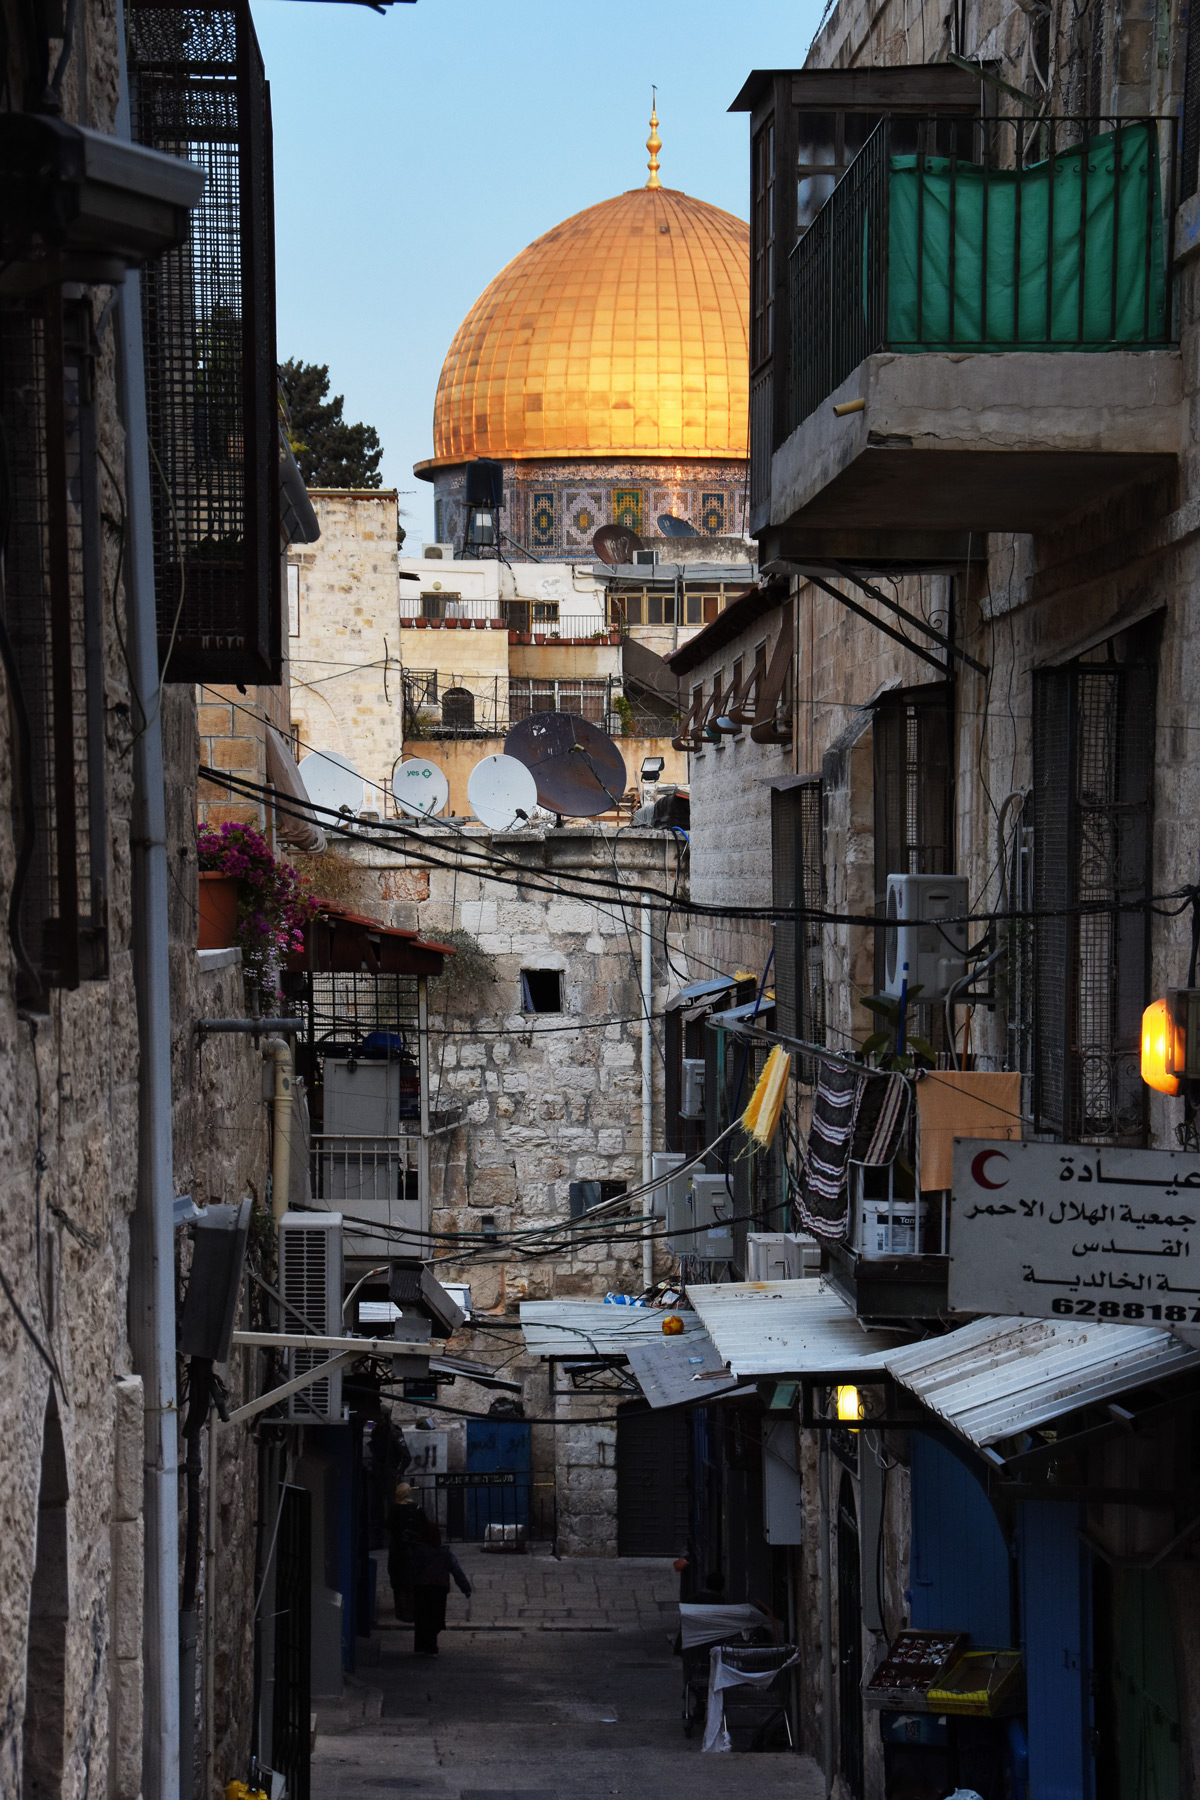 Arriving in the Holy Land and Jerusalem – finally!